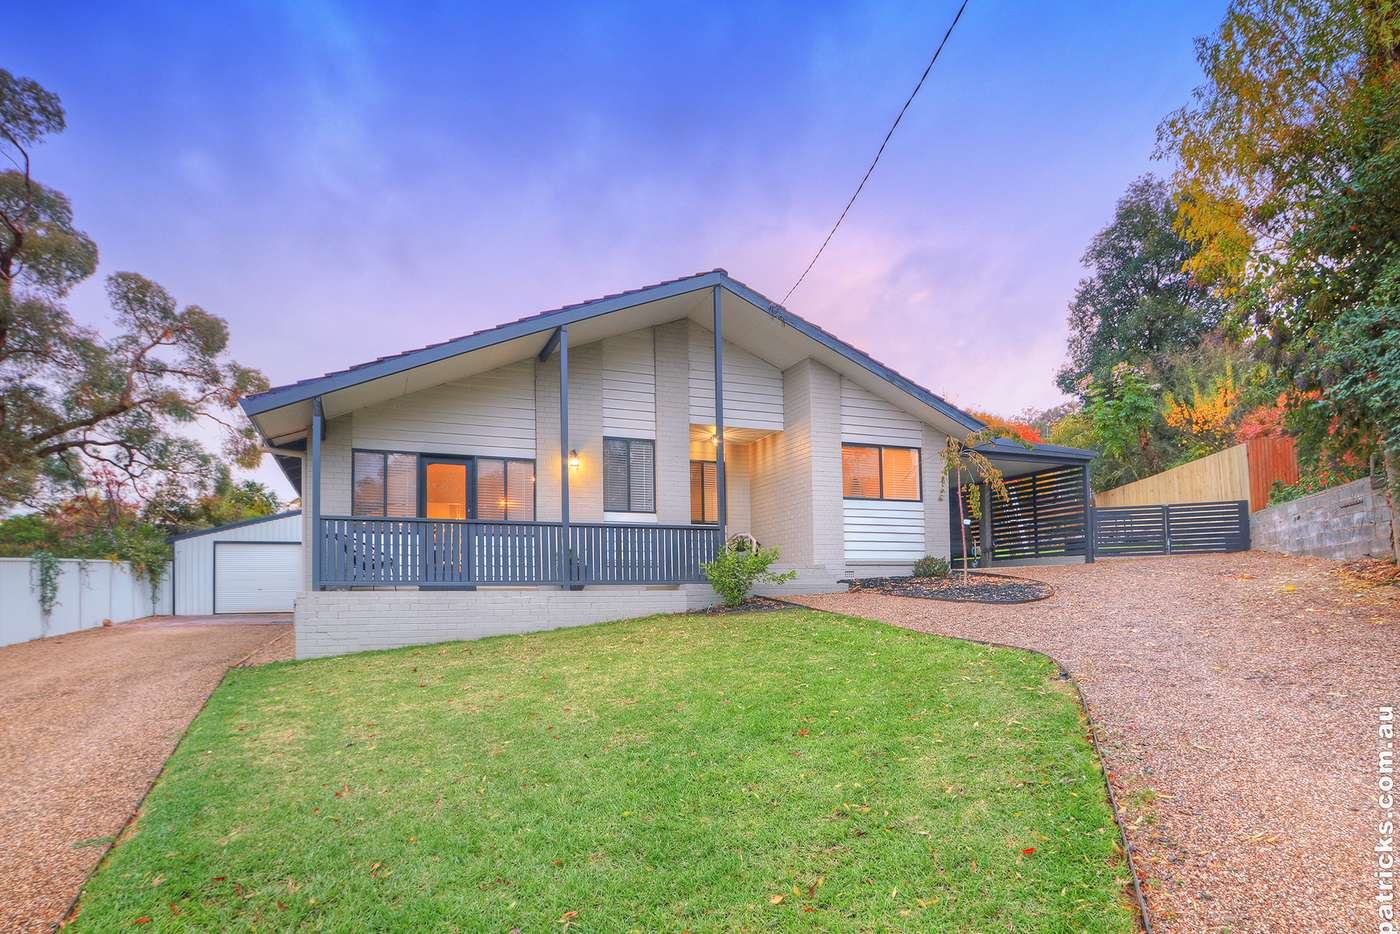 Main view of Homely house listing, 3 Raleigh Place, Kooringal NSW 2650